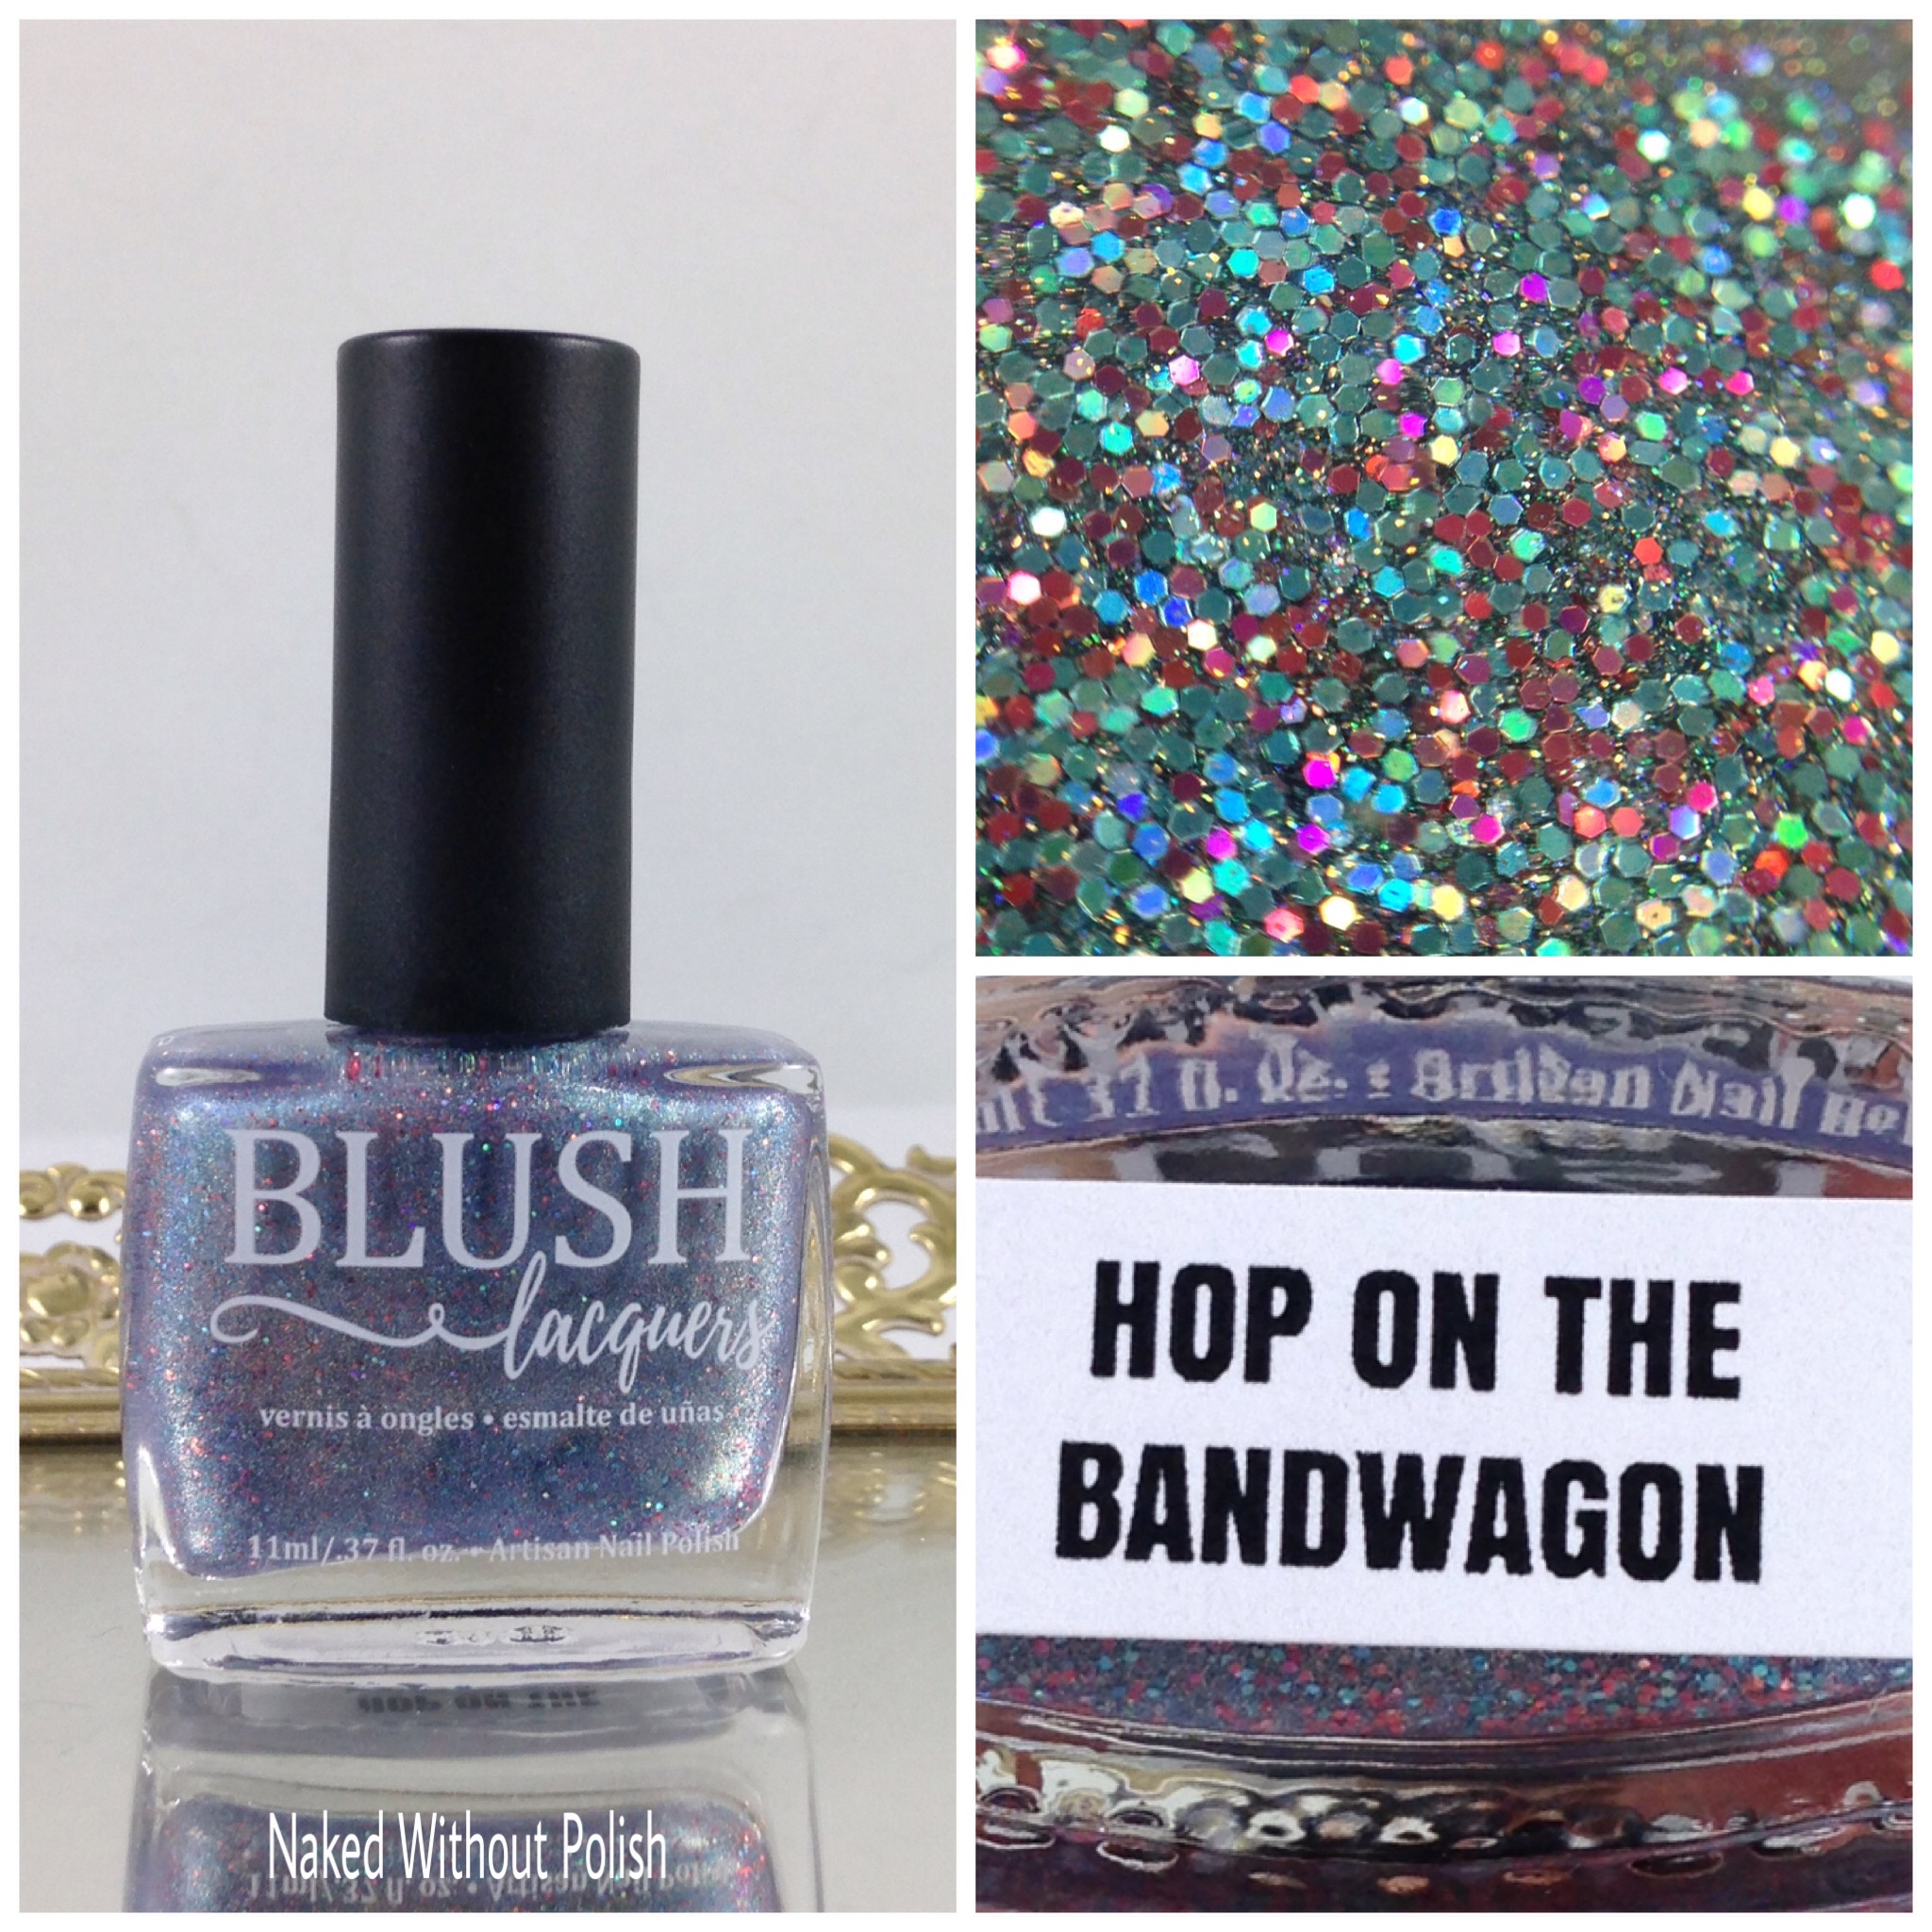 Polish-Pickup-Blush-Lacquers-Hop-on-the-Bandwagon-1